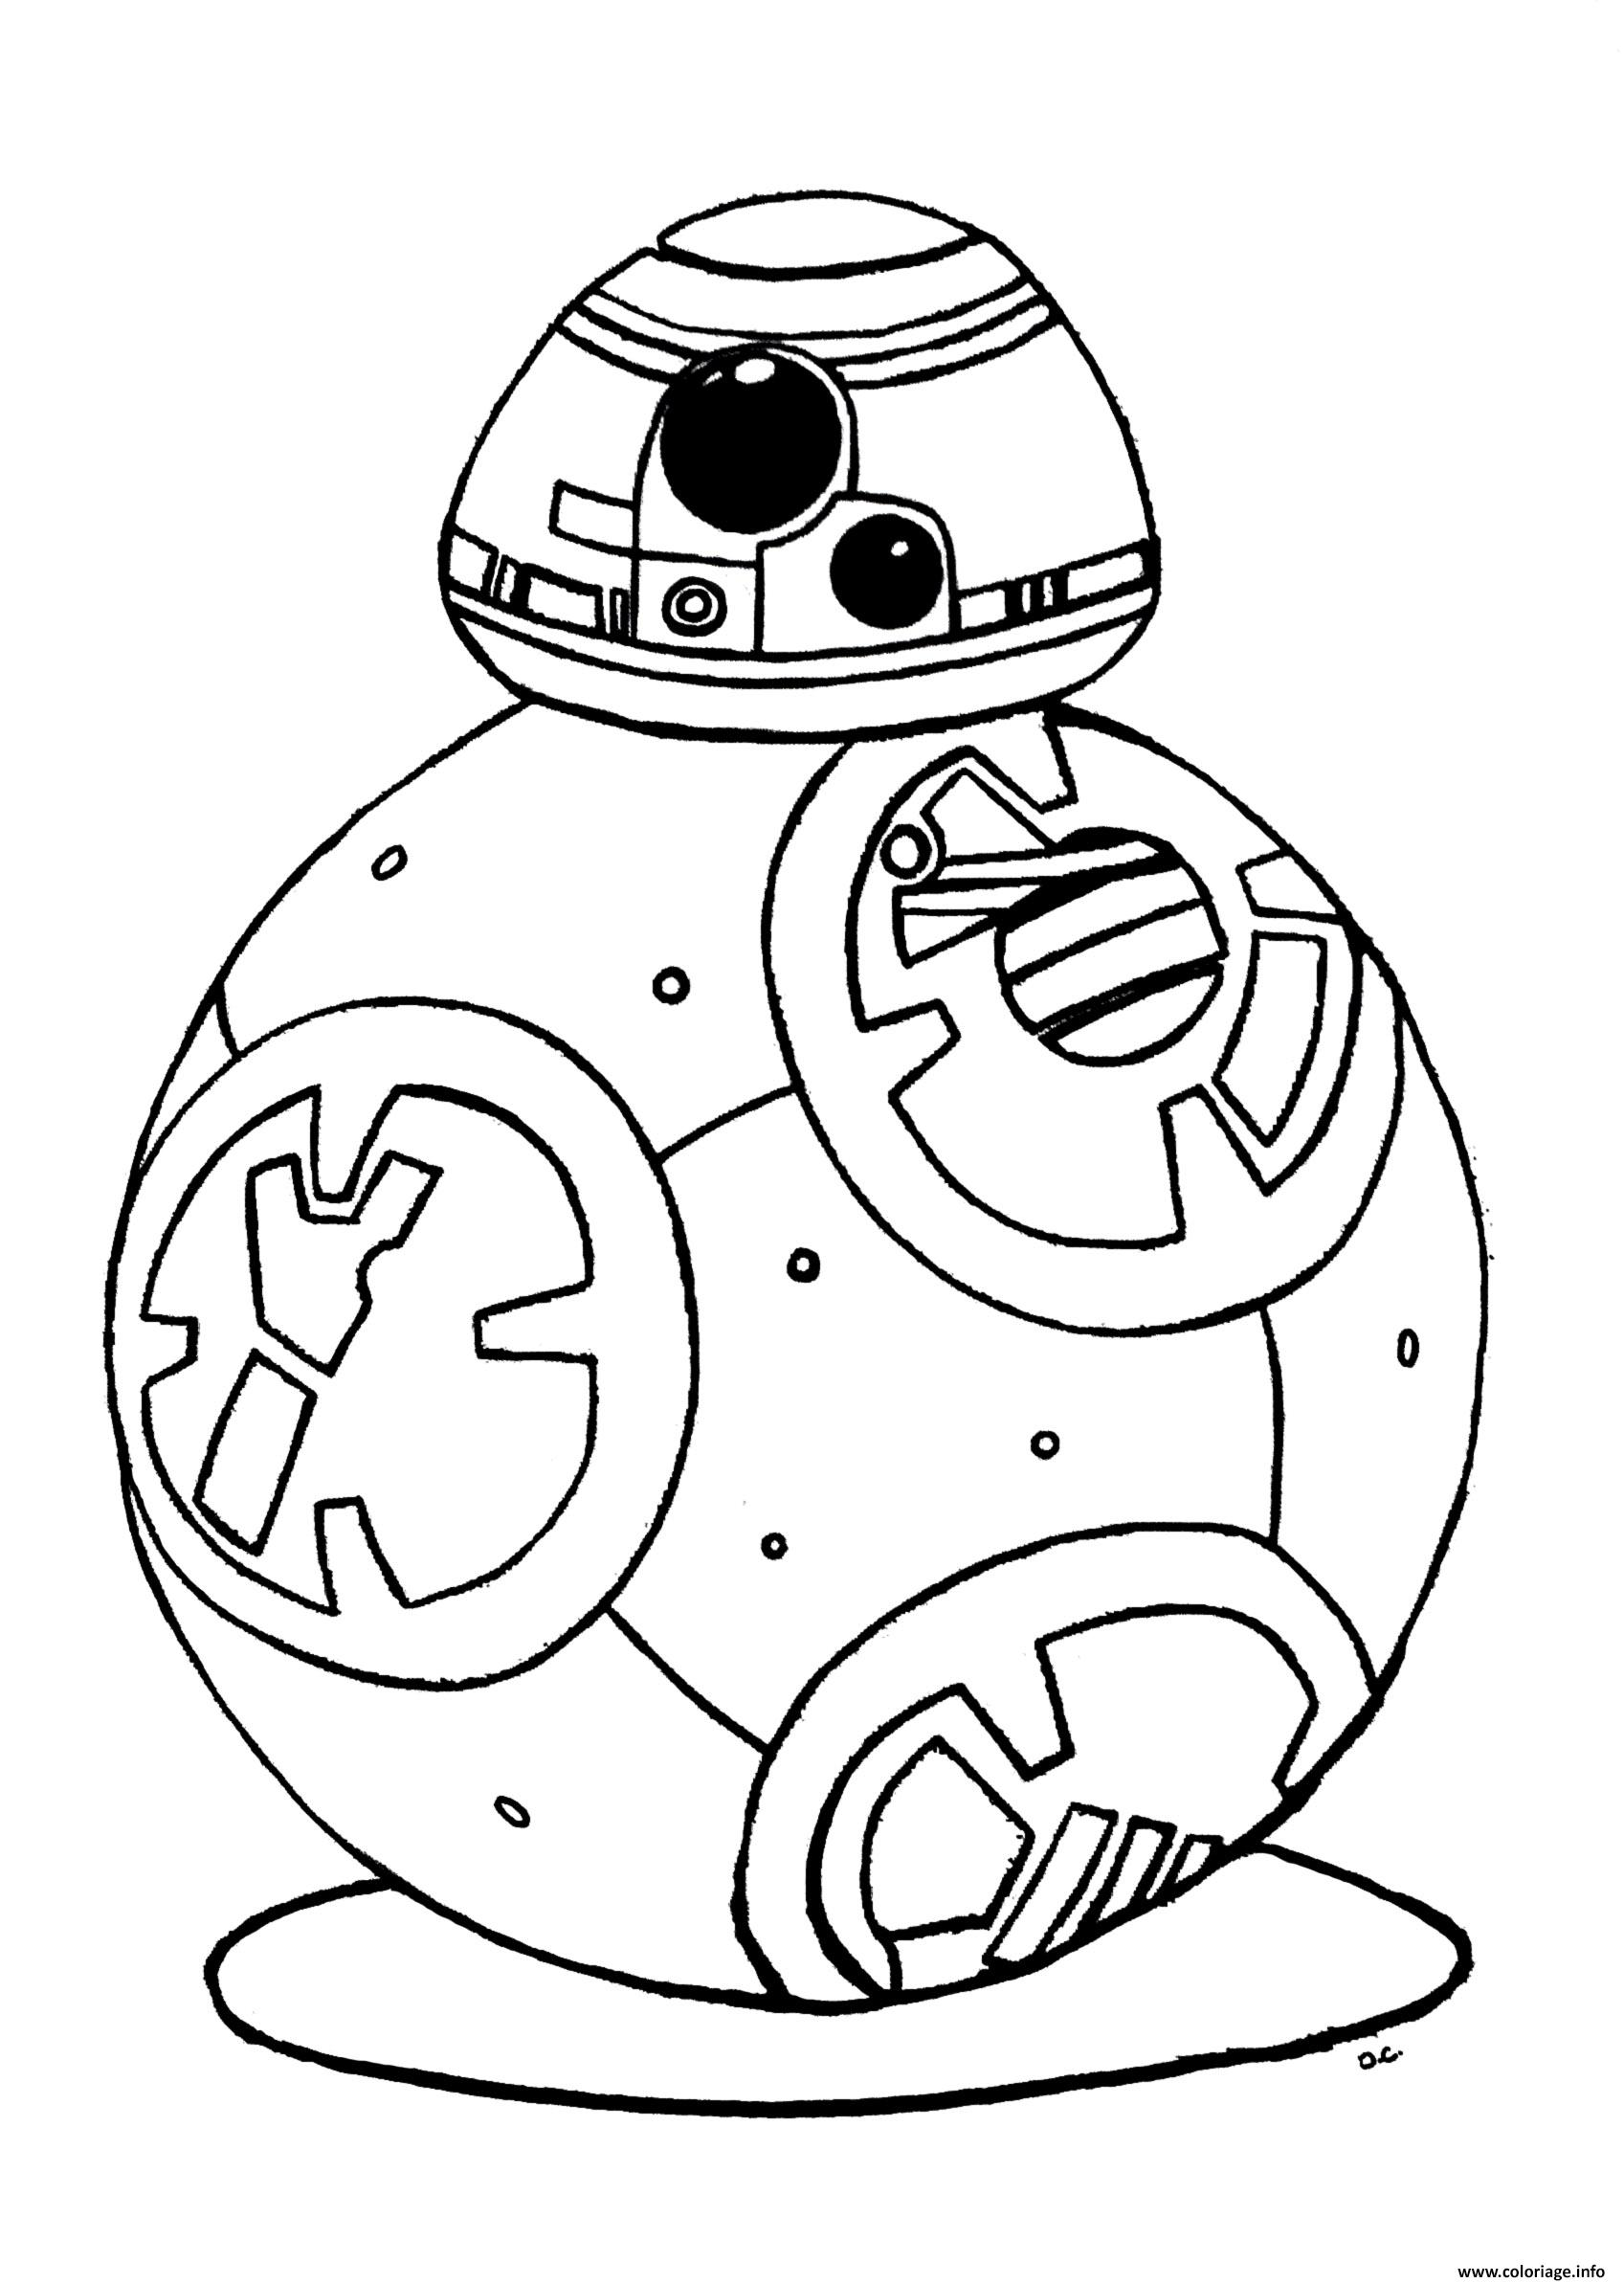 Coloriage Bb 8 Star Wars 7 Reveil De La Force Robot Bb8 Dessin à Imprimer